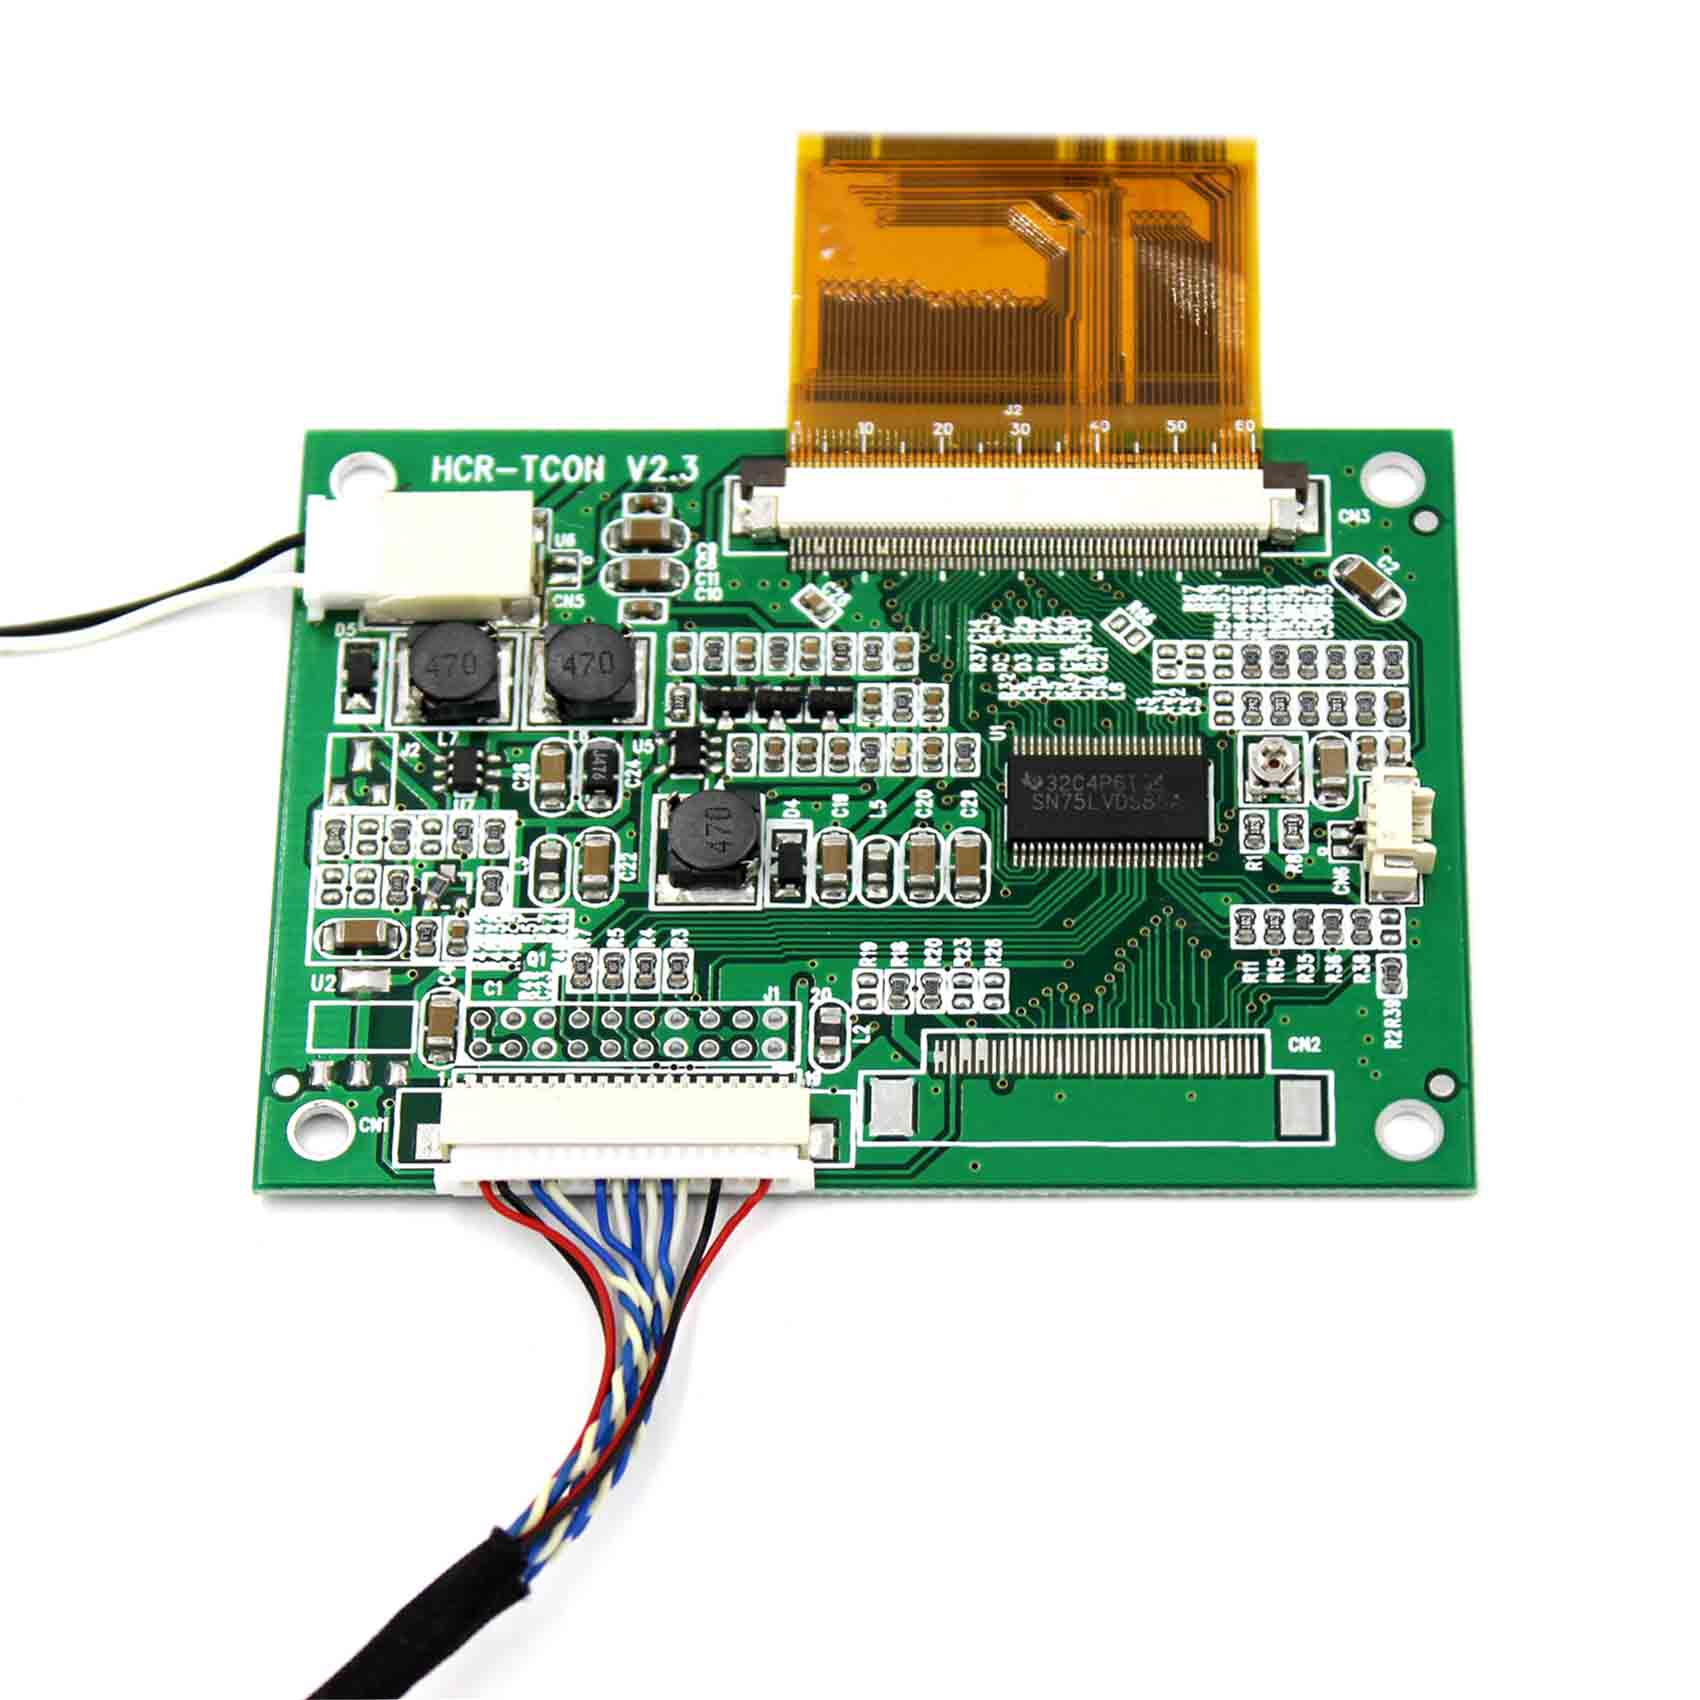 Back To Search Resultsconsumer Electronics Controller Board Module Vga Dvi Monitor Accessories Diy Electronic Kit Display Audio Tv Hdmi For Lcd Panel Parts Replacement To Reduce Body Weight And Prolong Life Remote Controls